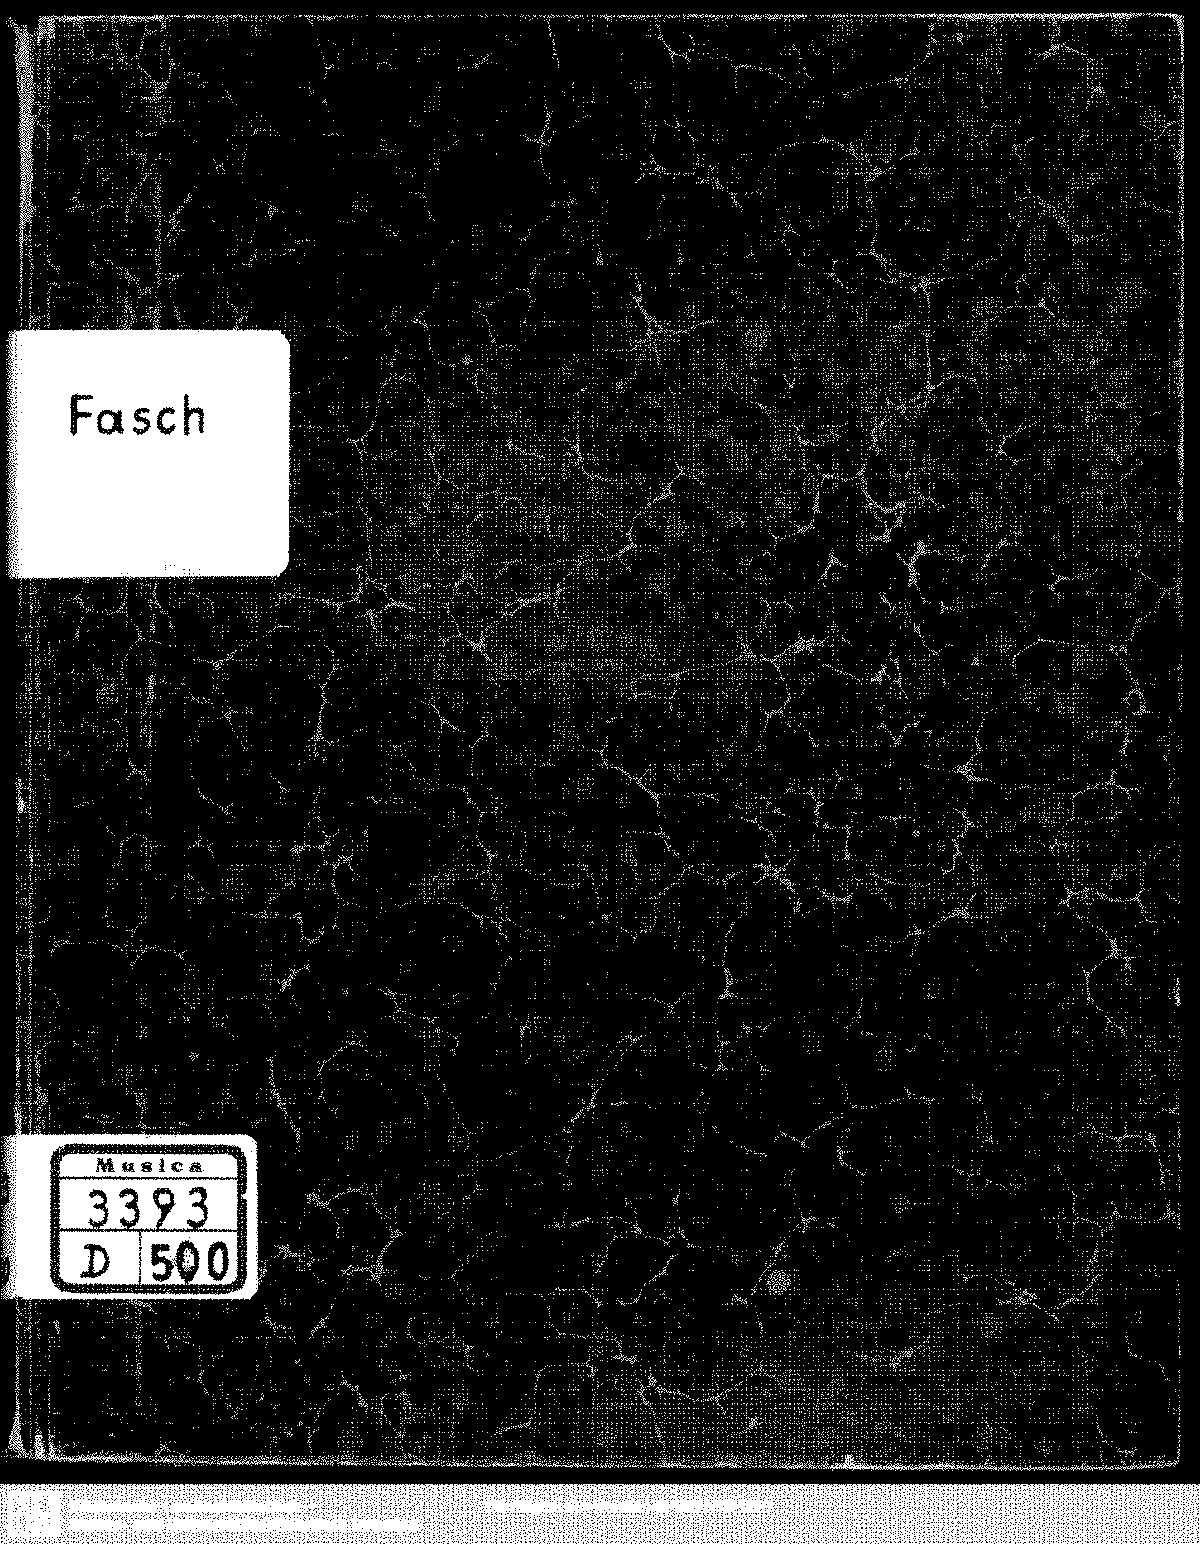 PMLP86698-cf fasch 6part mass, canon 366435426.pdf